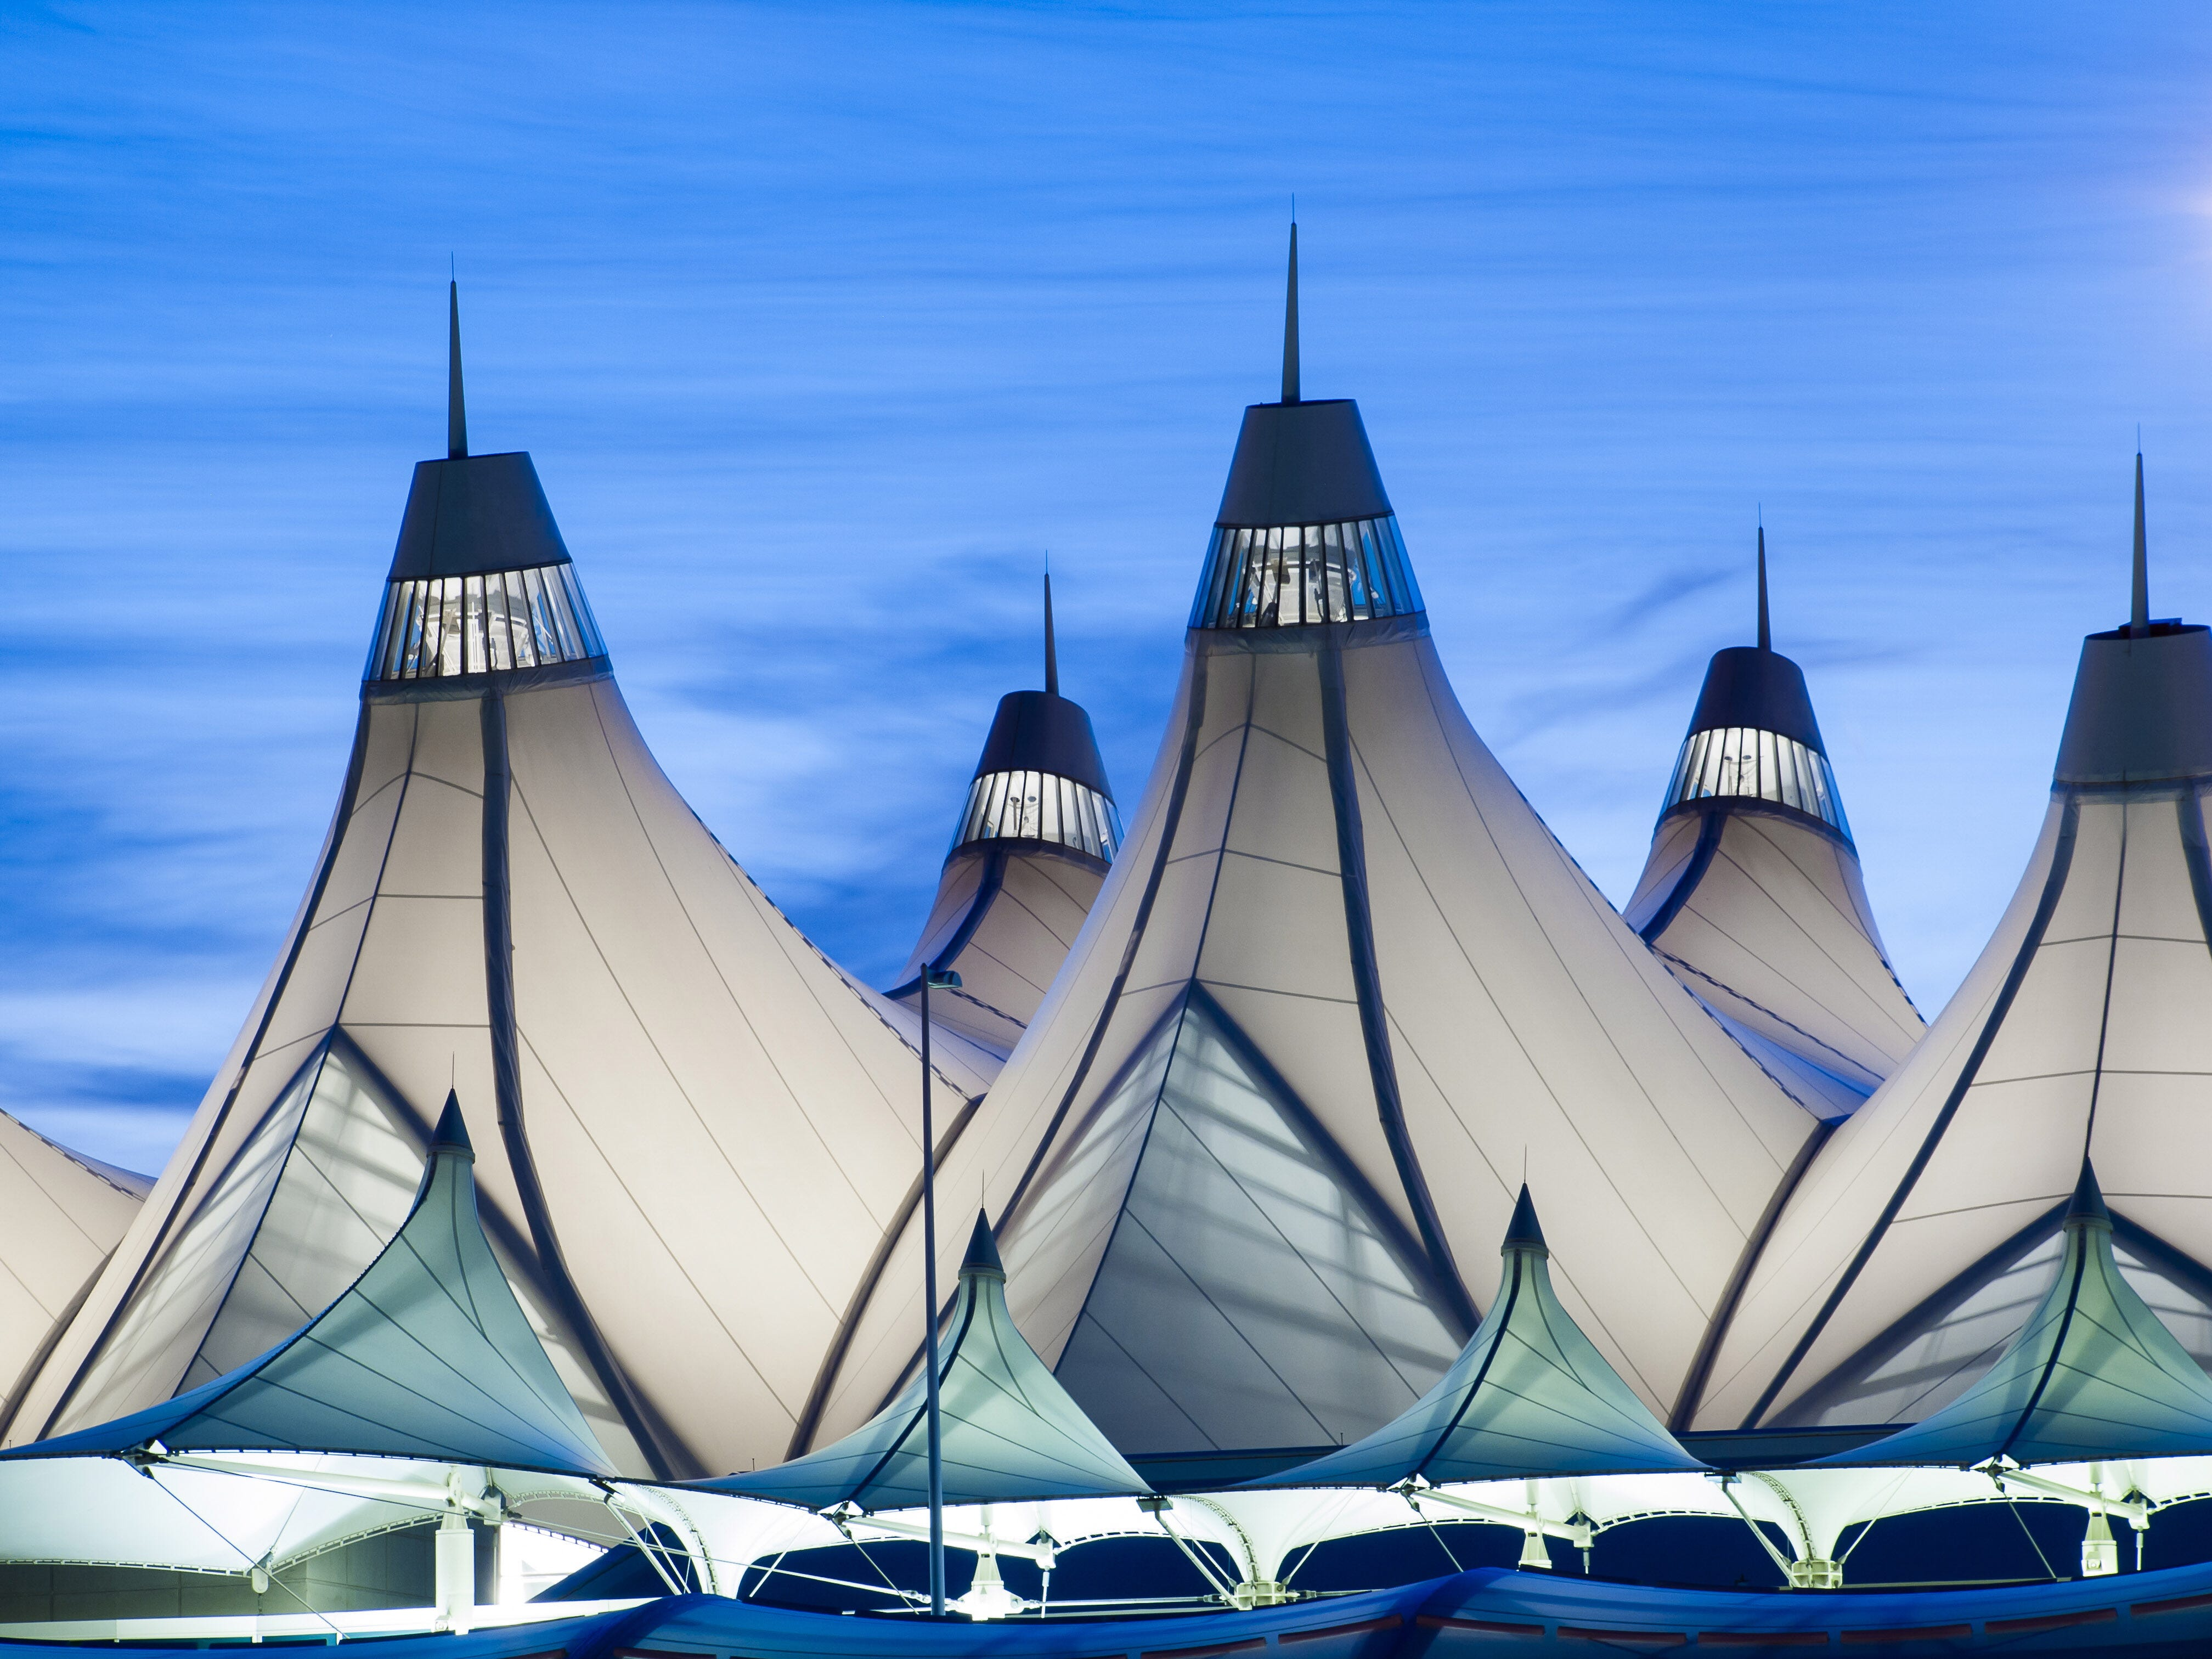 Denver airport just had its busiest month ever   USA Today